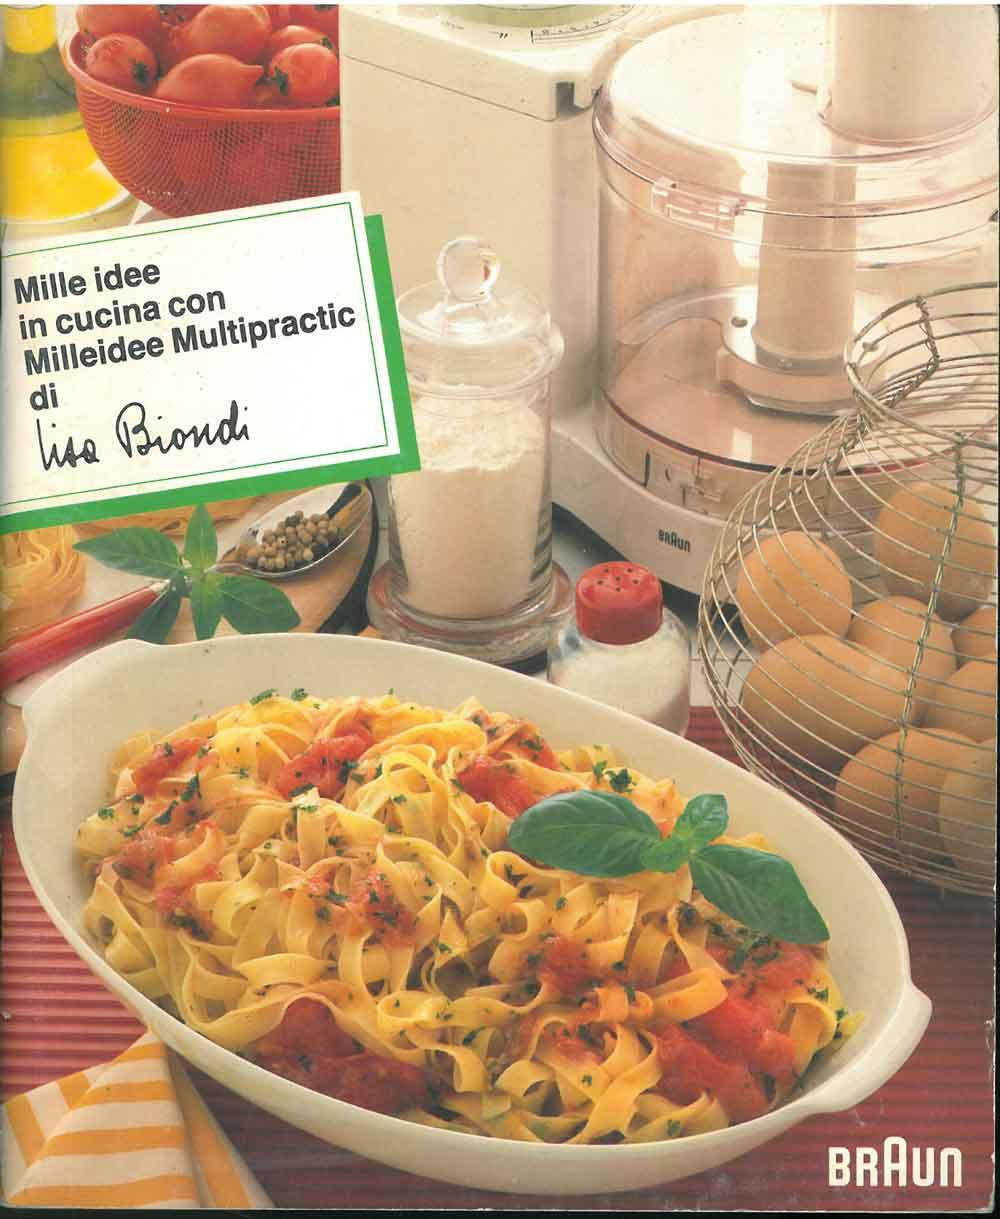 Mille idee in cucina con milleidee ...